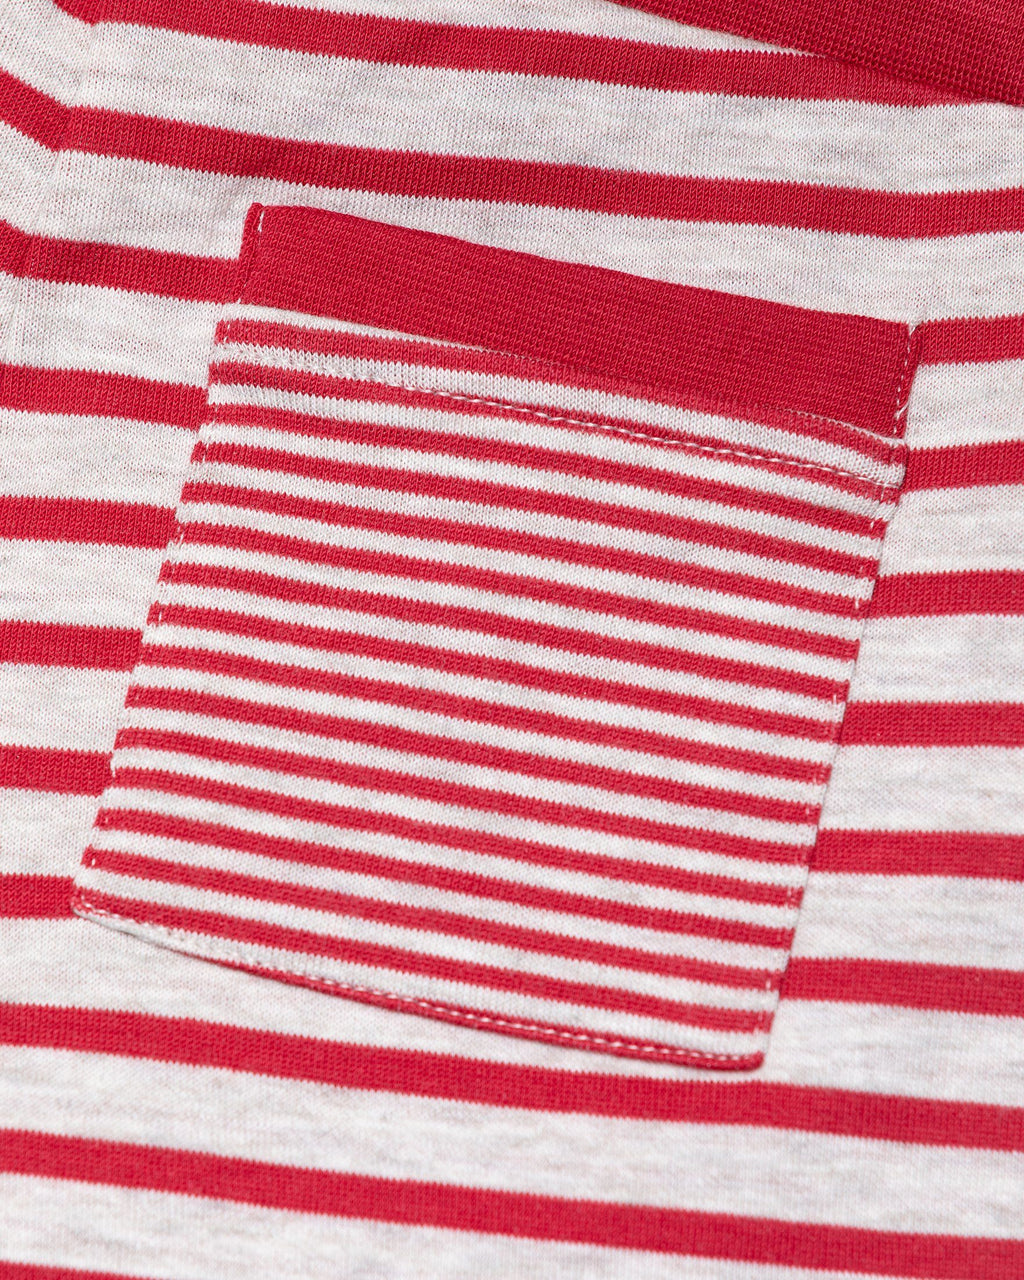 variant_1 | EN Organic Shorts red white striped for kids and babies | DE Bio Rote weiße gestreifte Shorts für kinder und babies